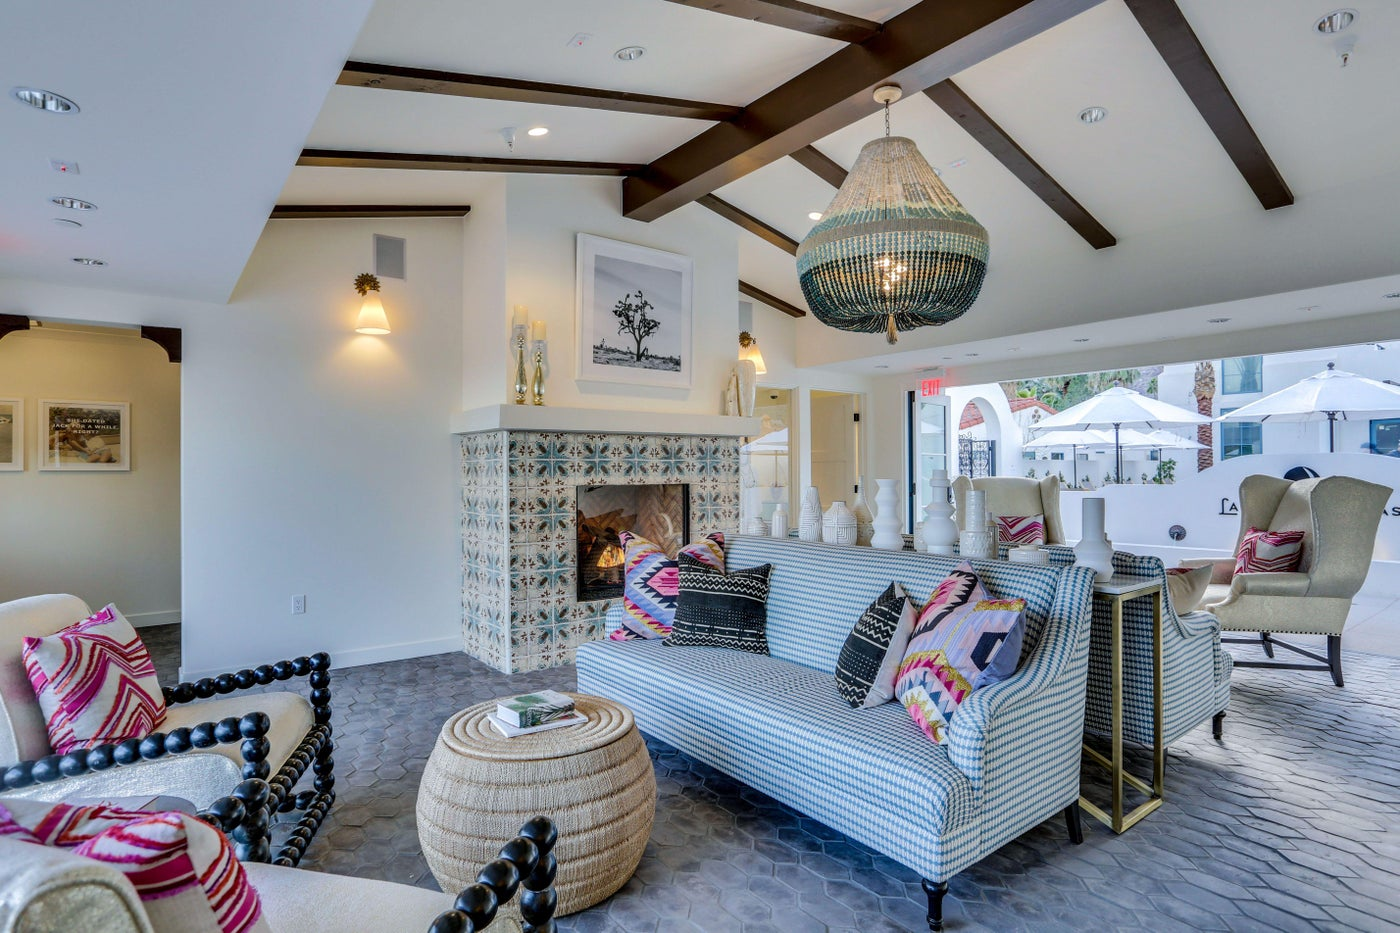 Entry lobby with custom pendant and fireplace at Palm Springs La Serena Villas